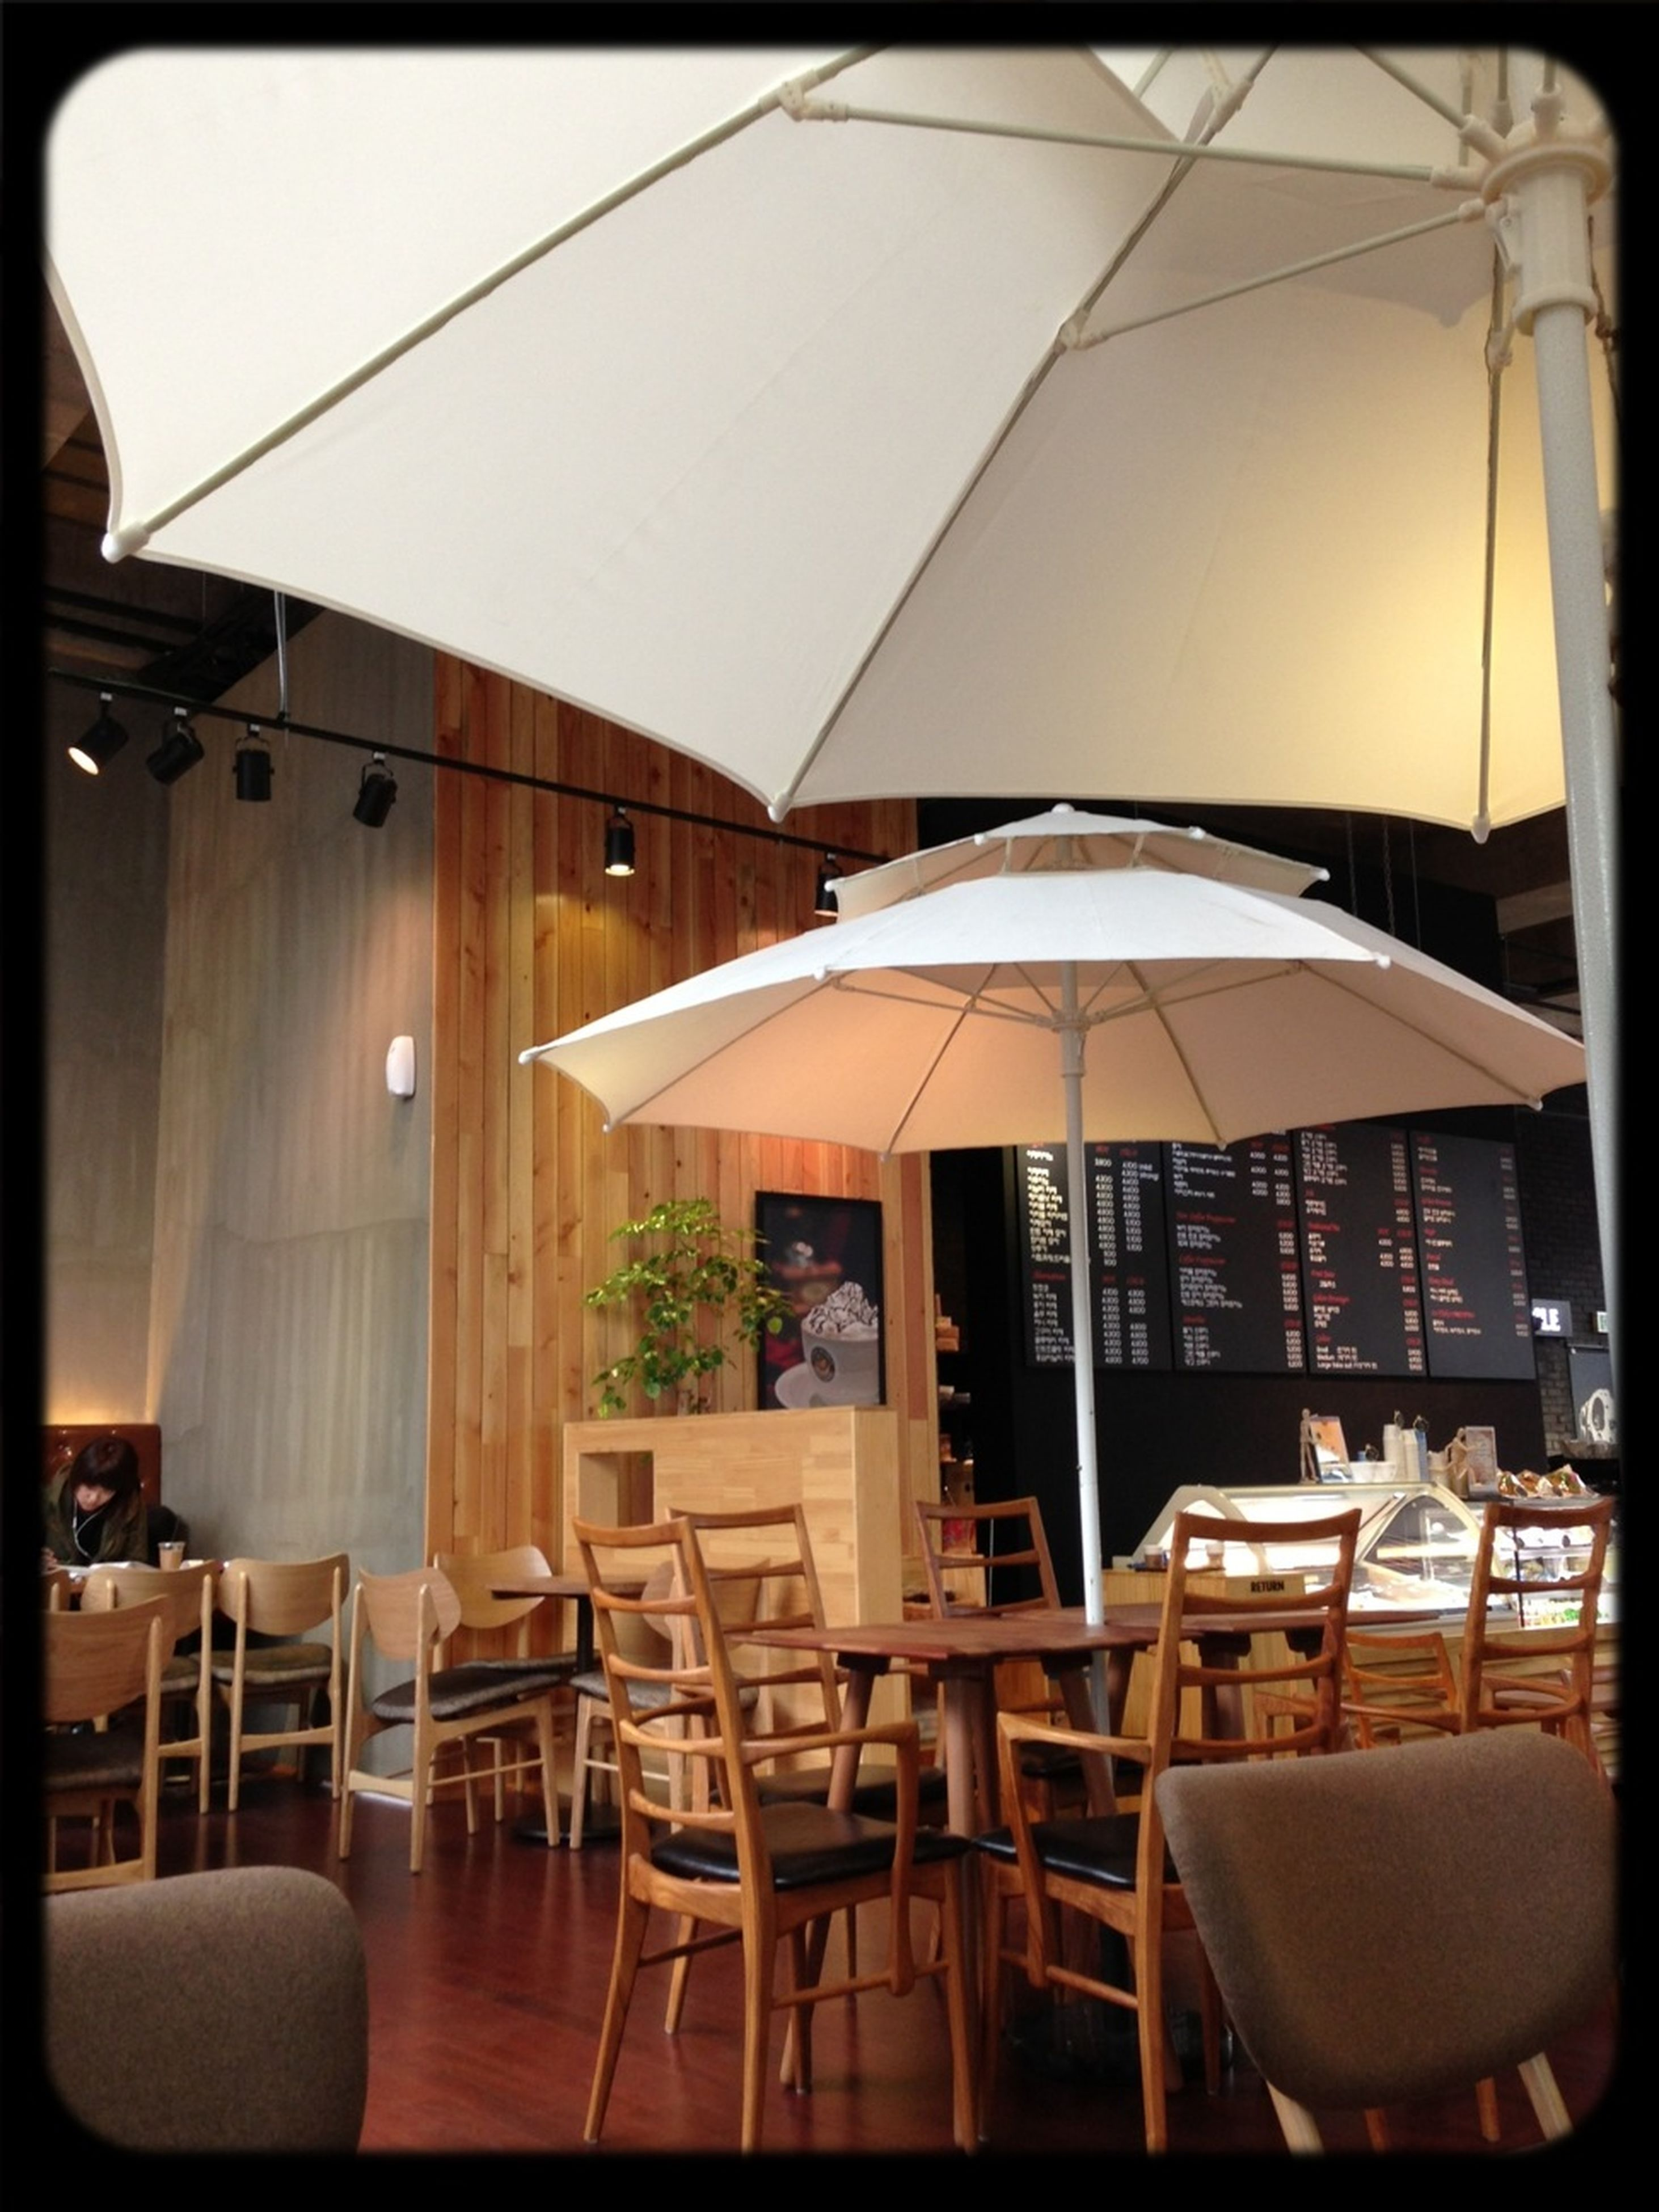 indoors, chair, table, absence, restaurant, empty, seat, window, place setting, architecture, built structure, furniture, interior, transfer print, cafe, auto post production filter, day, ceiling, sidewalk cafe, arrangement